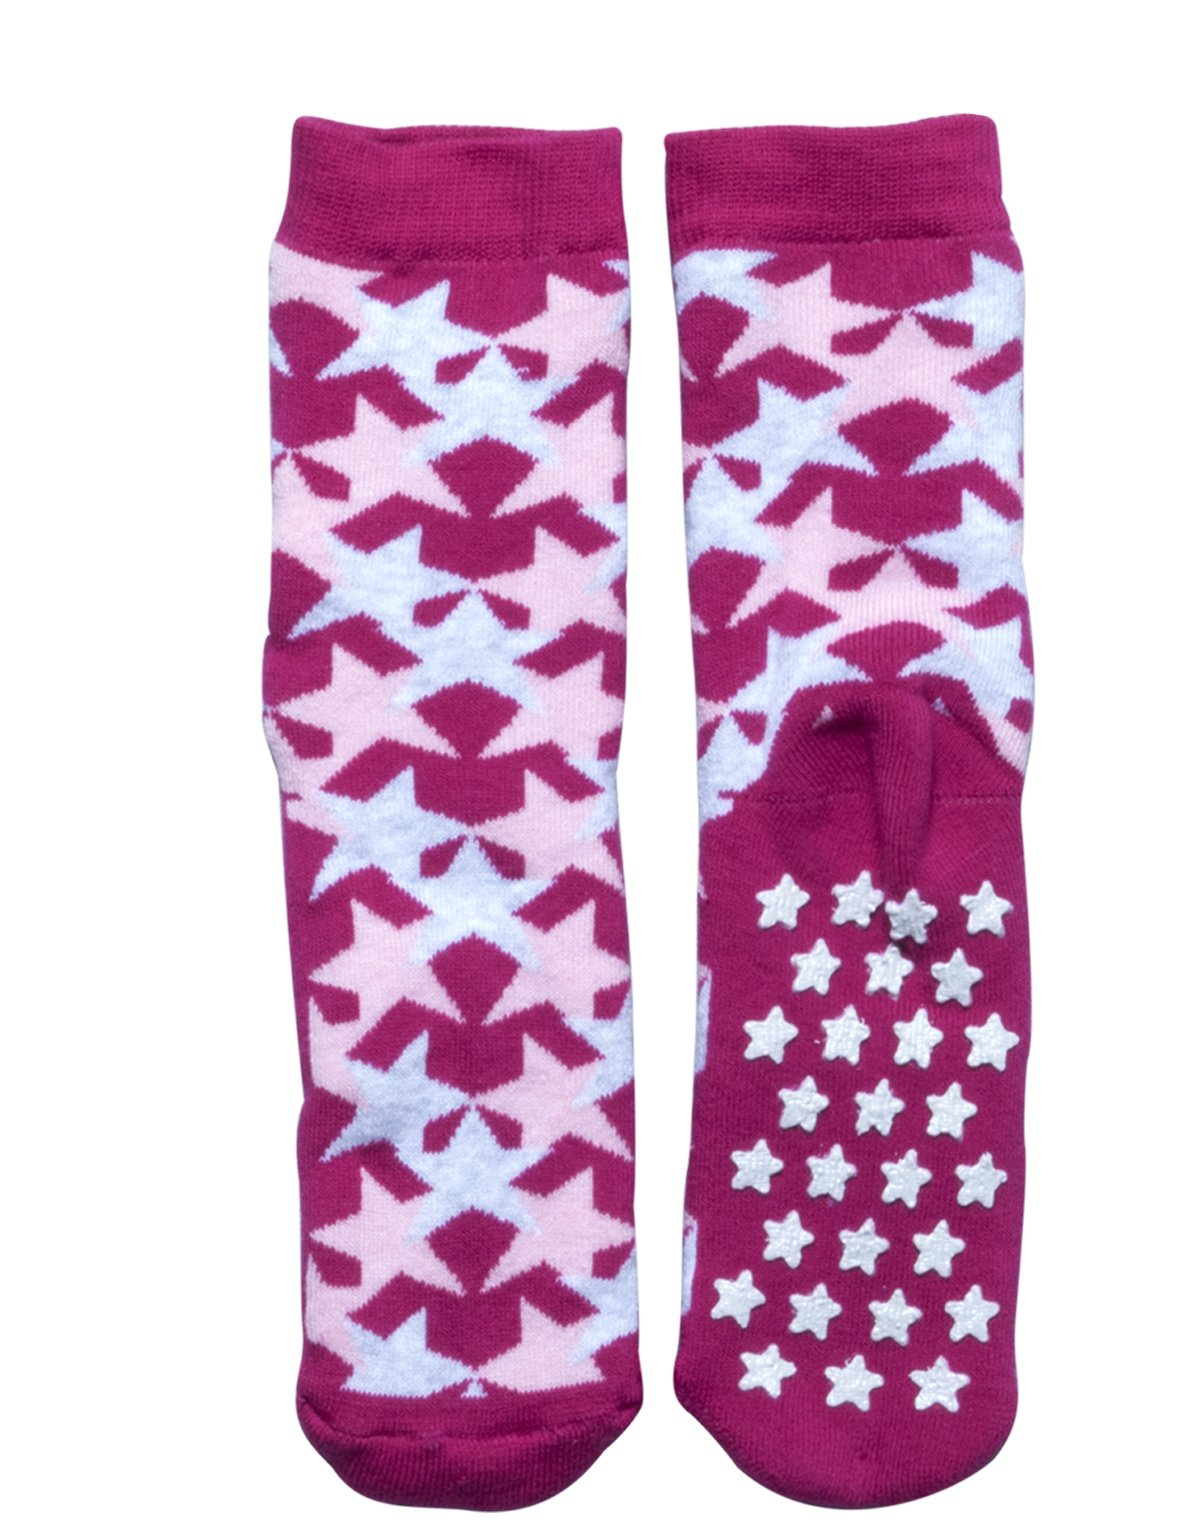 SLIPPER NON SKID SOCKS | KIDS ANTI SLIP COTTON SOCKS WITH STARS | ITALIAN HOSIERY | (USA: 7/11 = EU: 24/28, FUXIA)